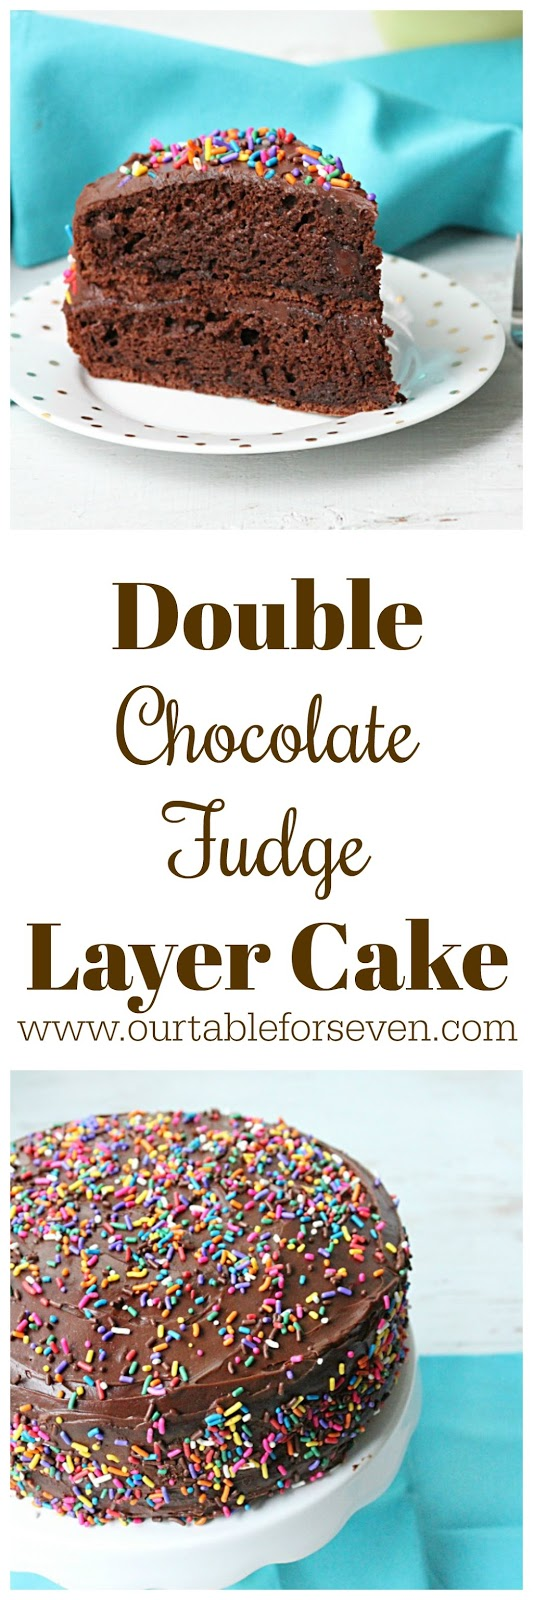 Double Chocolate Fudge Layer Cake from Table for Seven